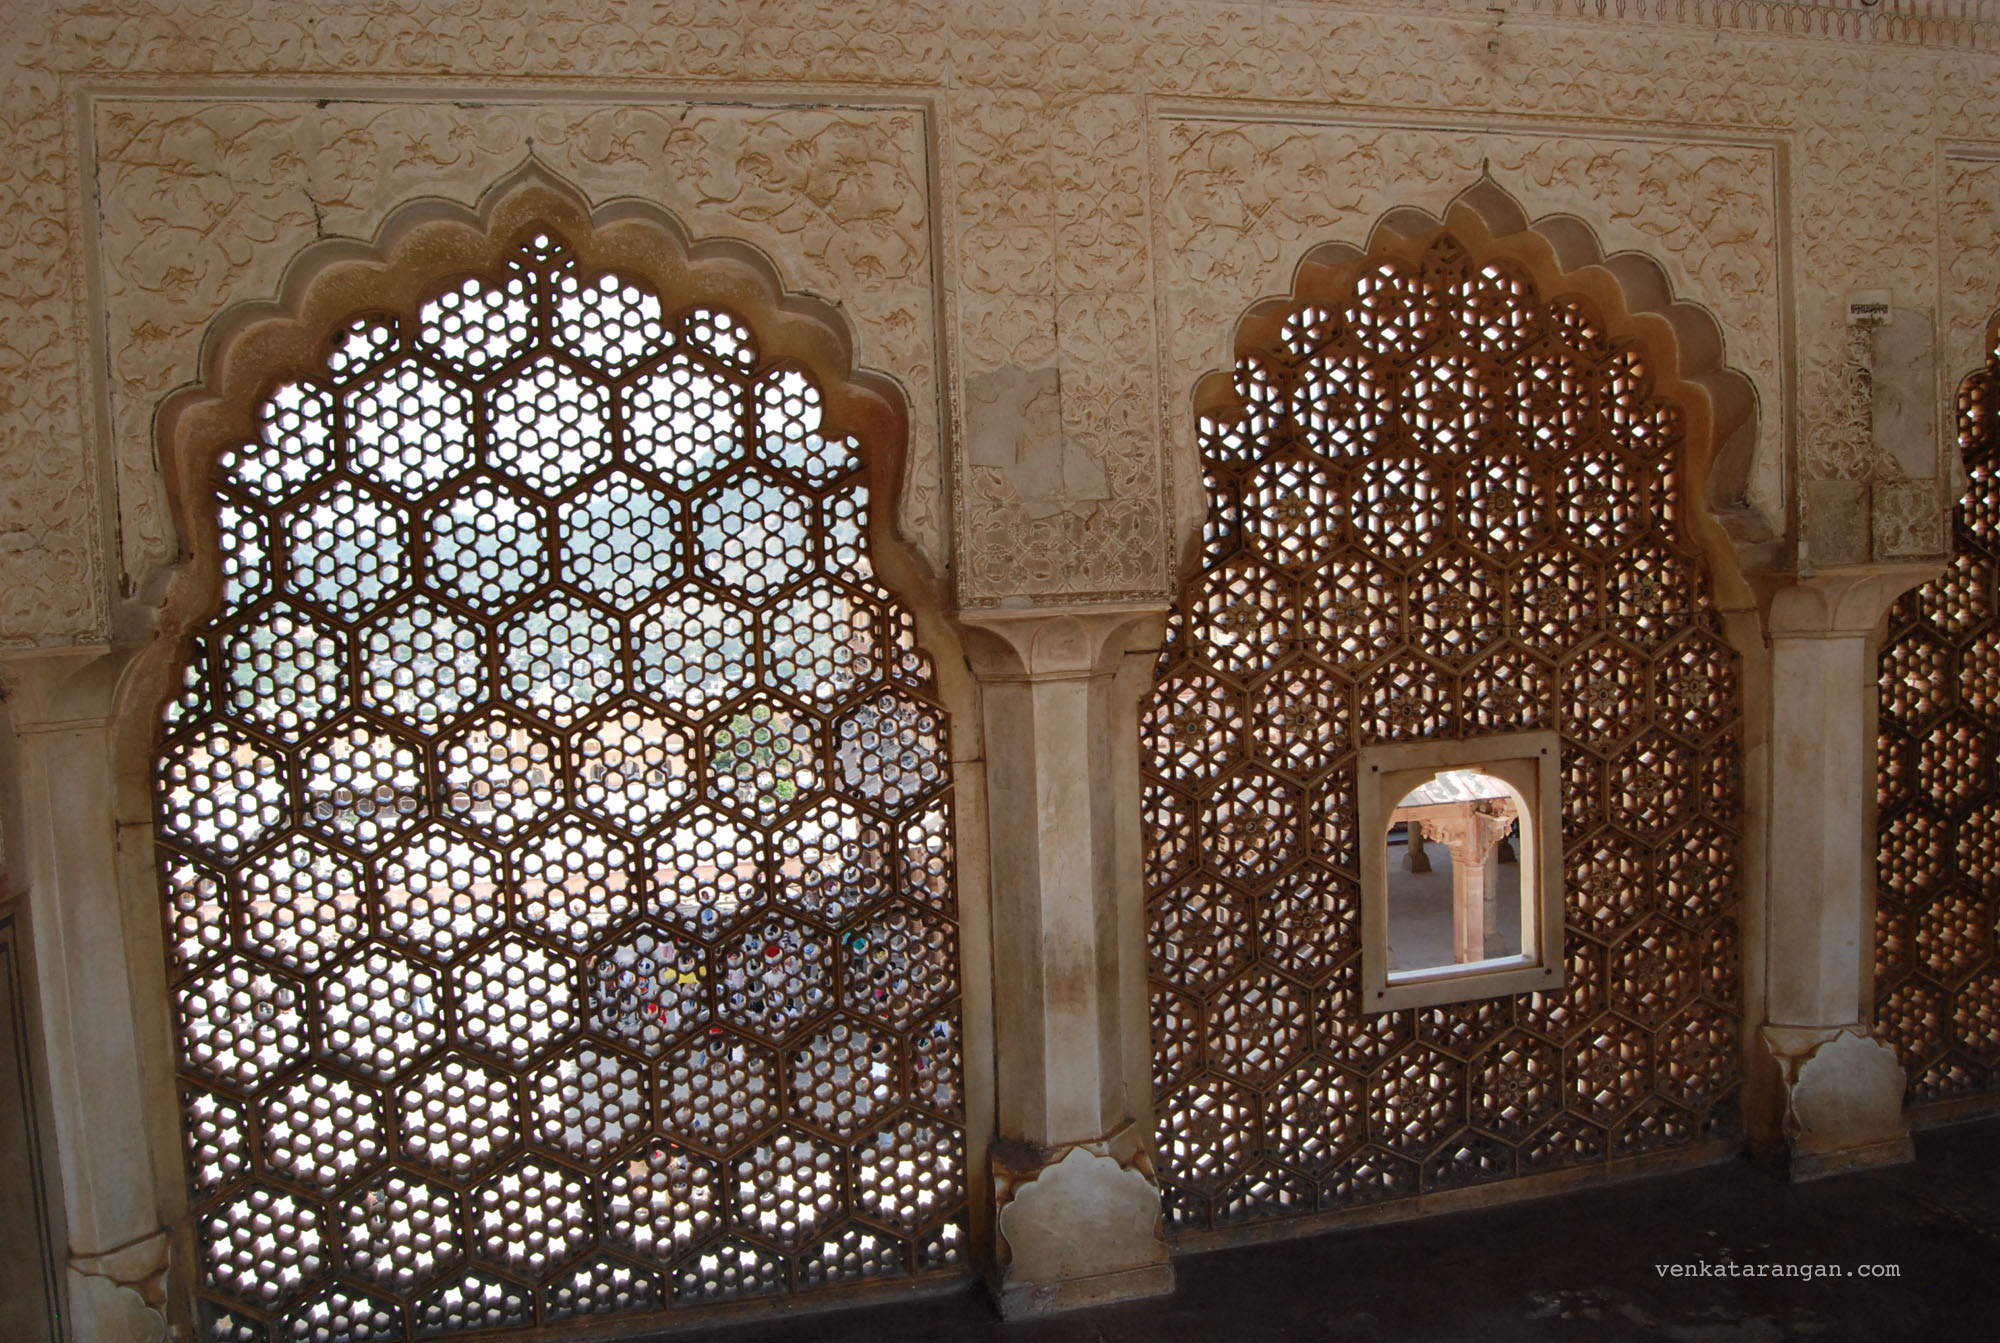 Suhag Mandir where ladies of the royal family used to watch functions held in the Diwan-i-Aam through latticed windows